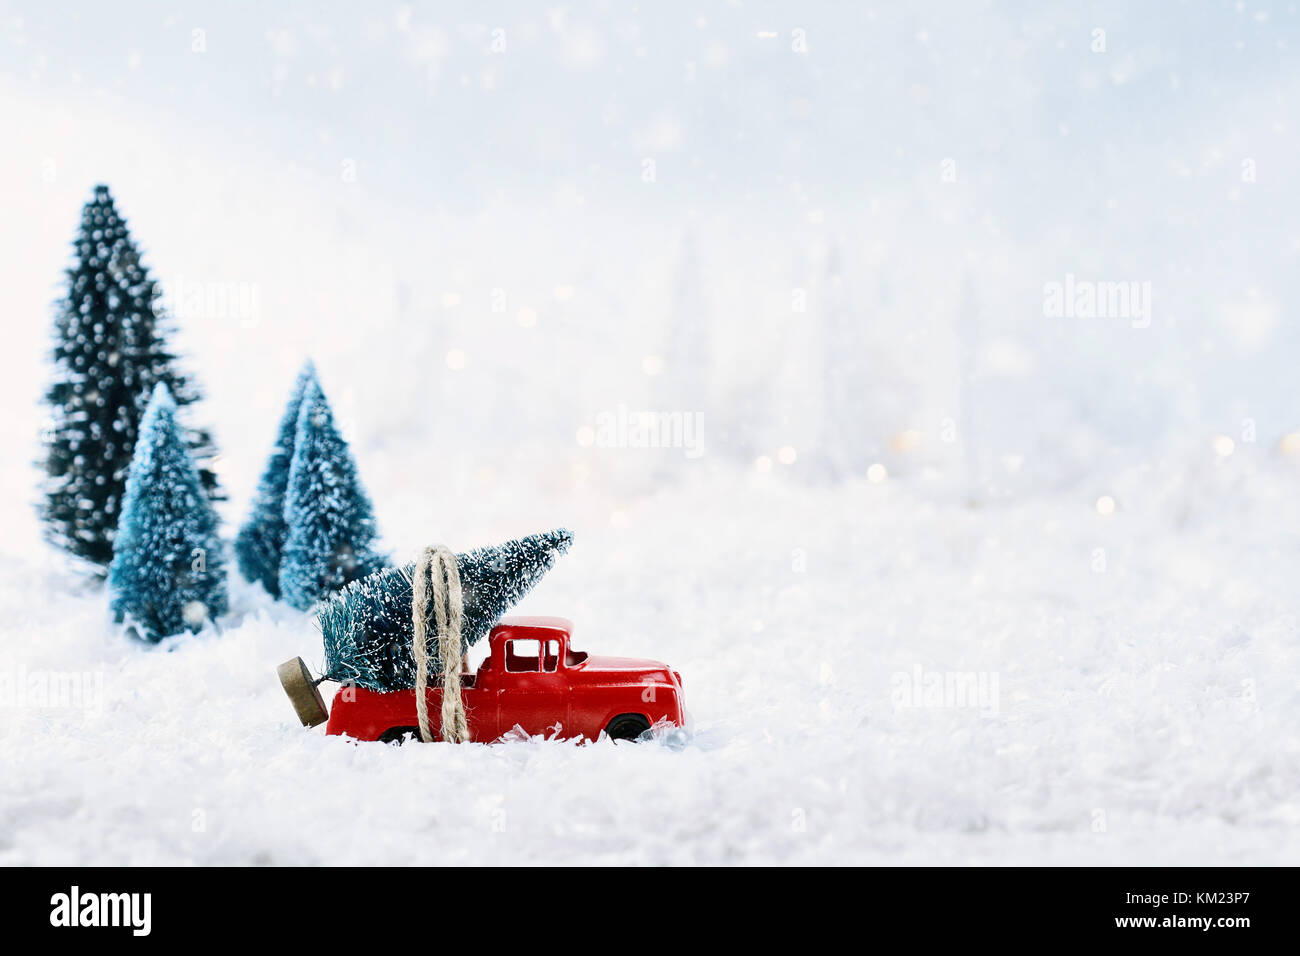 1950s antique vintage red truck hauling a christmas tree home through a snowy winter wonder land